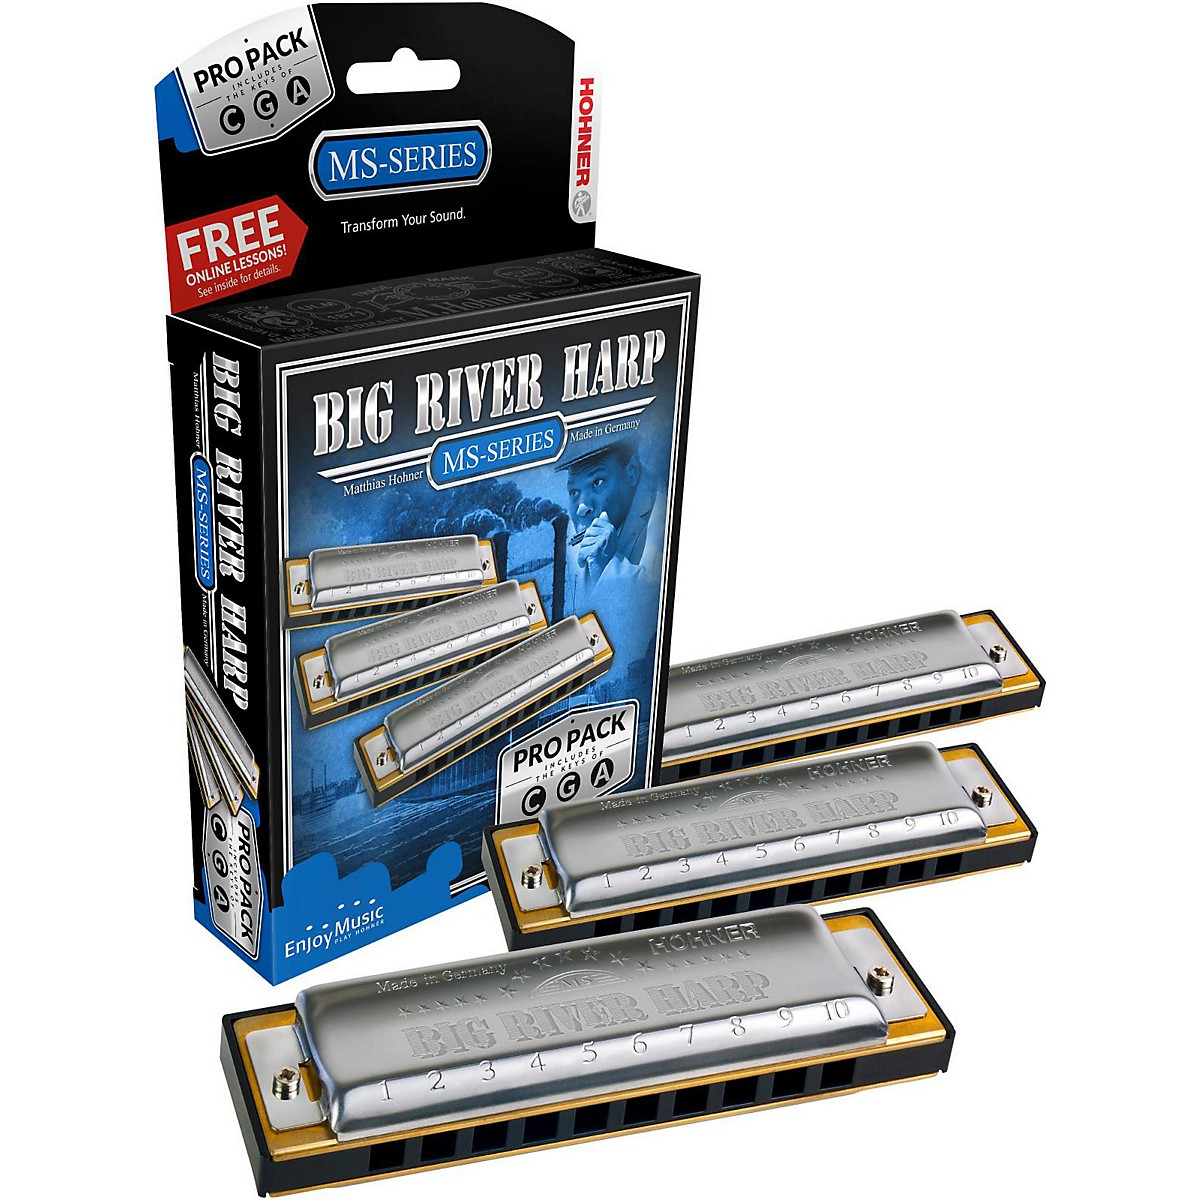 Hohner 590 Big River Harp Pro Pack - MS-Series Harmonicas